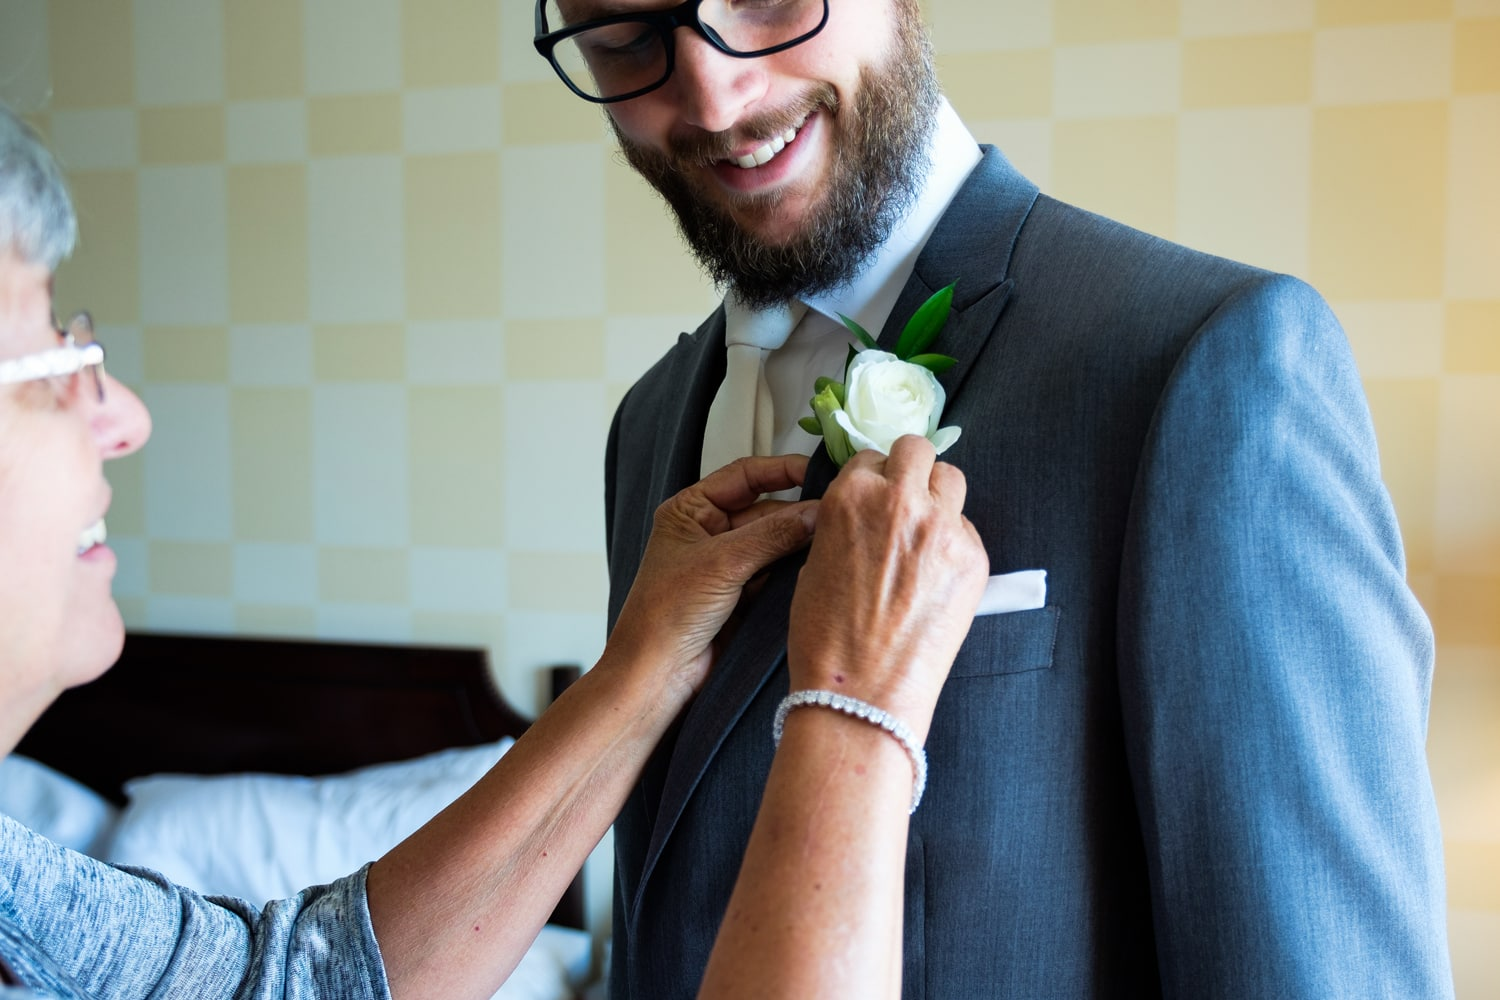 John Moore getting ready for his wedding day. // Photo by Leia Smethurst